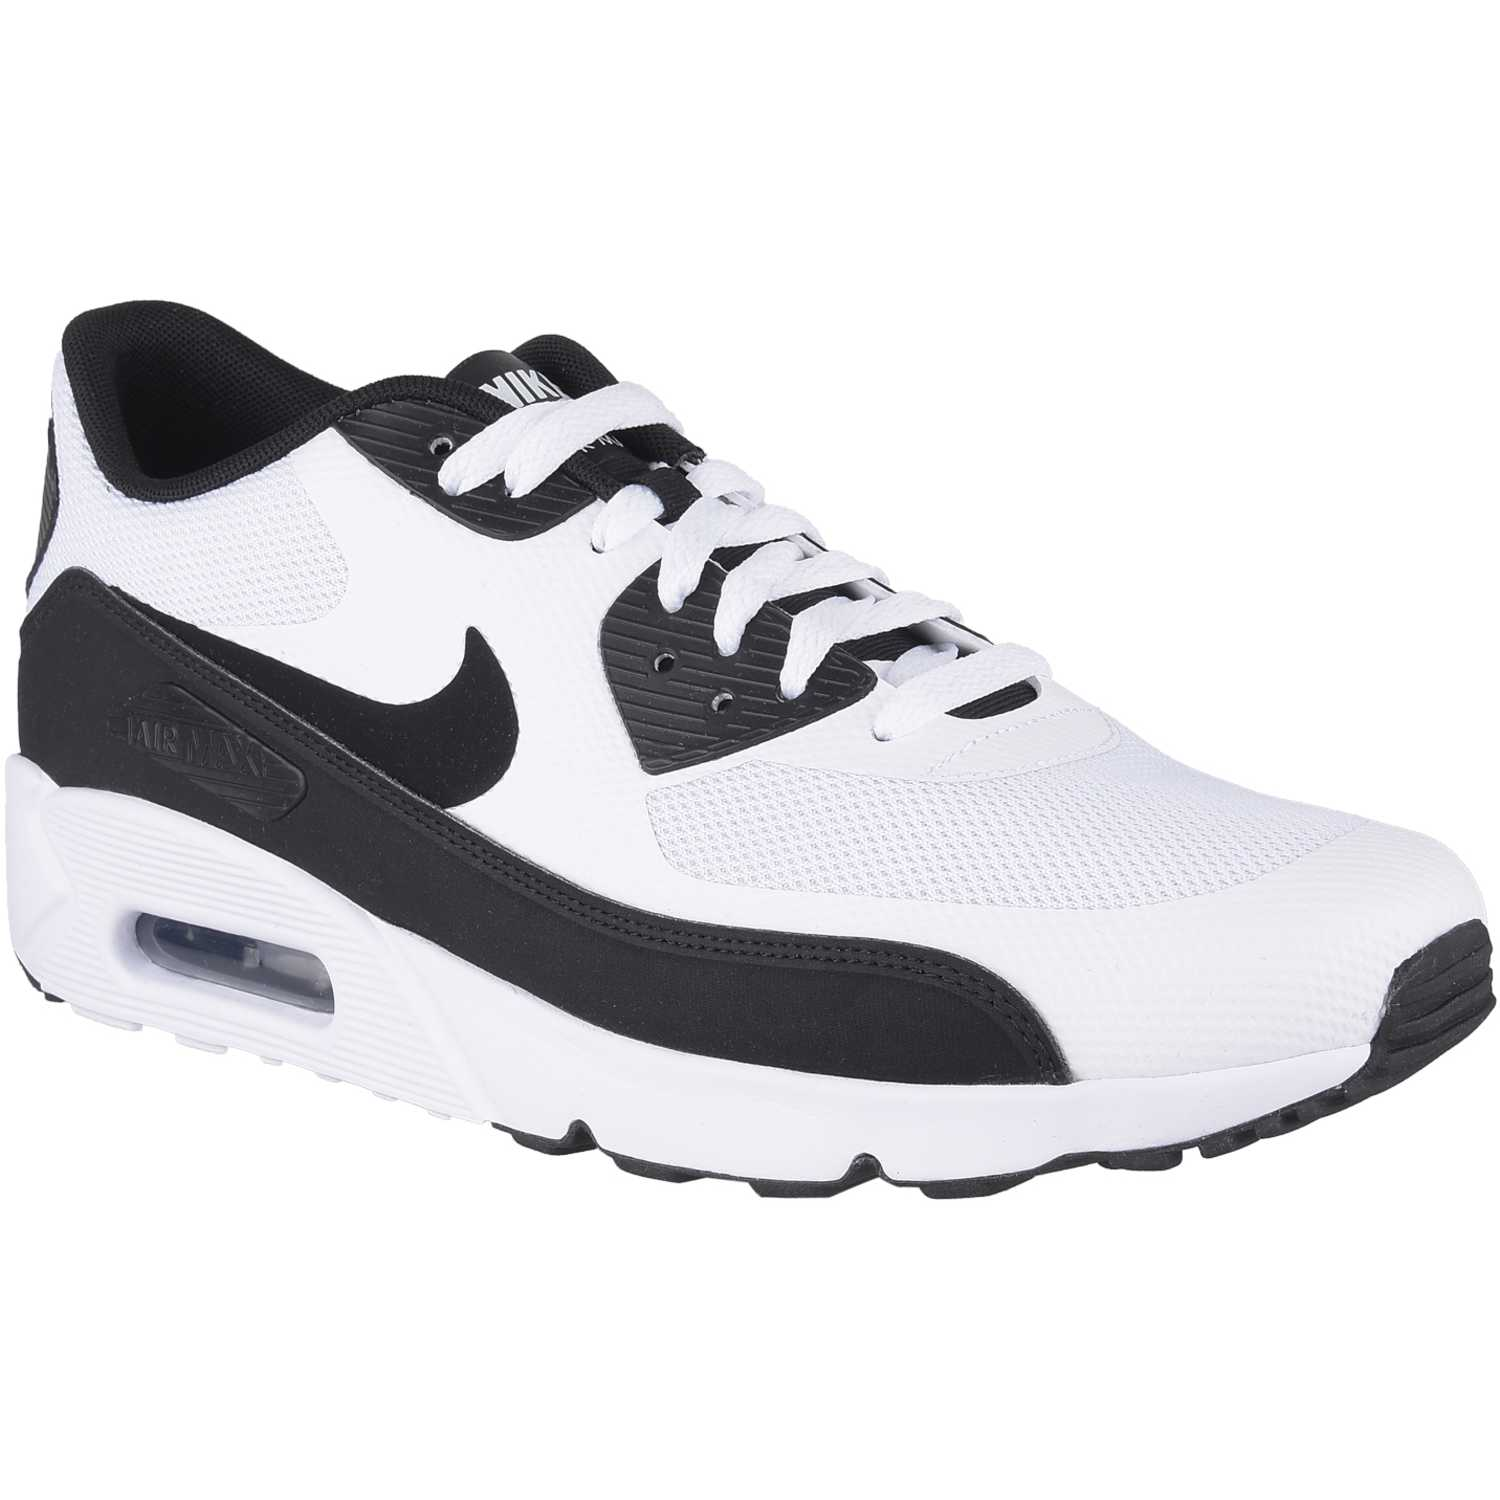 pretty nice a5941 7466a Zapatilla de Hombre Nike Blanco / Negro air max 90 ultra 2.0 essential